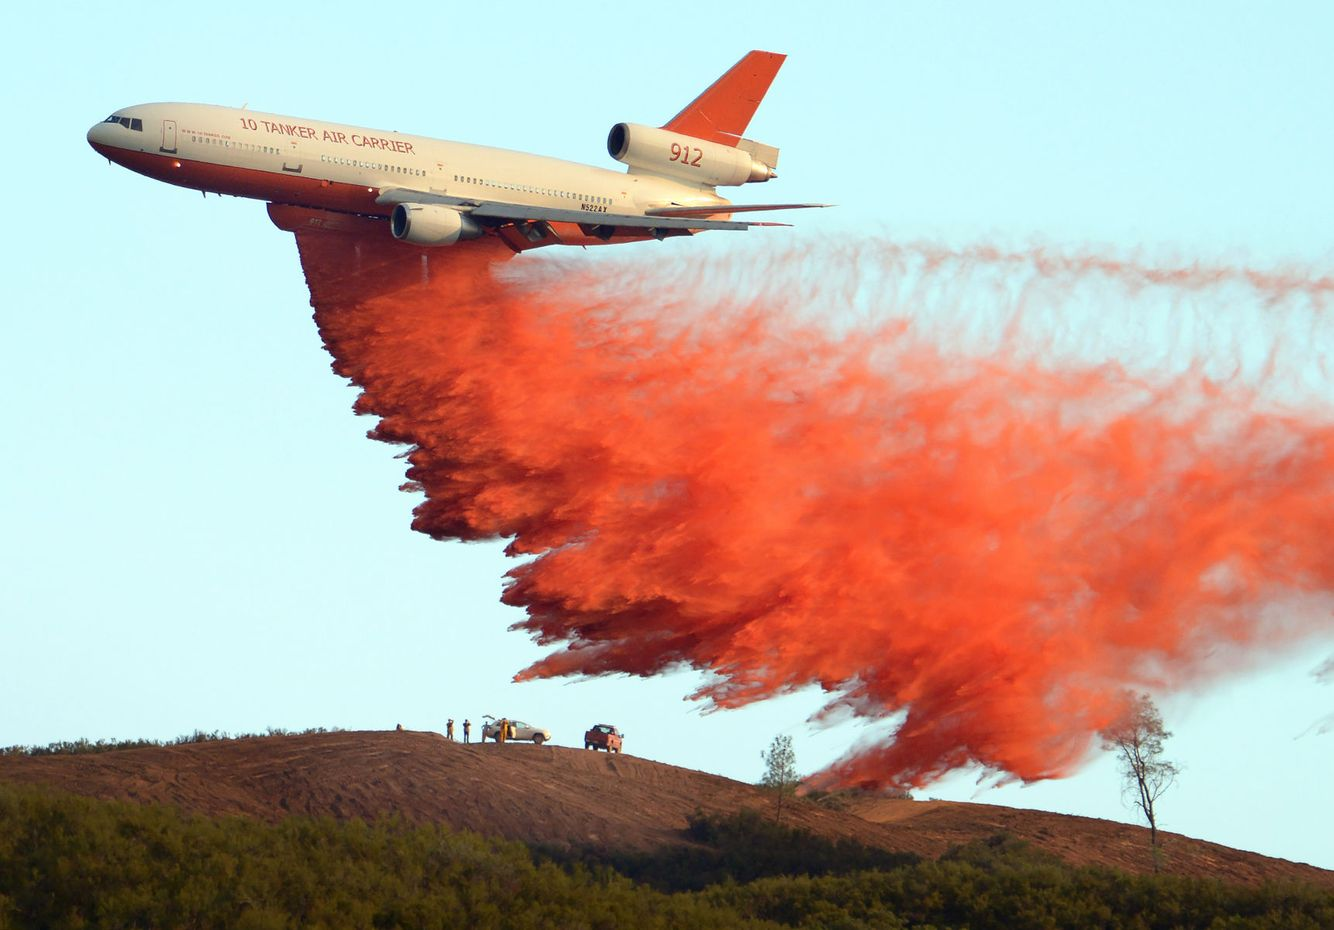 An air support tanker drops fire retardant on a ridge